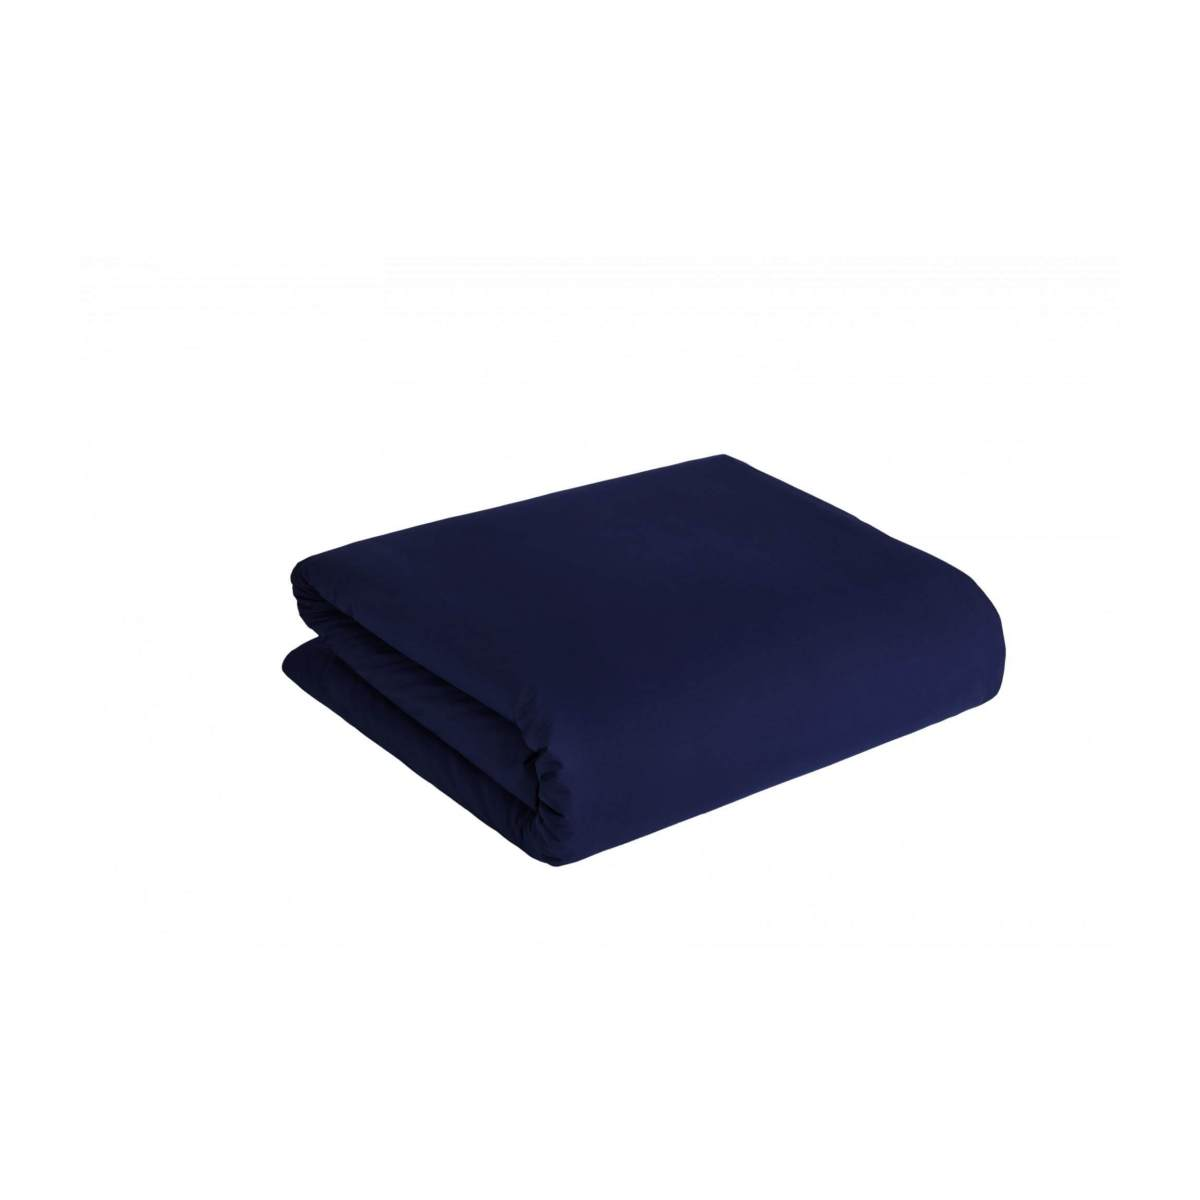 Duvet cover 140x200, dark blue n°4